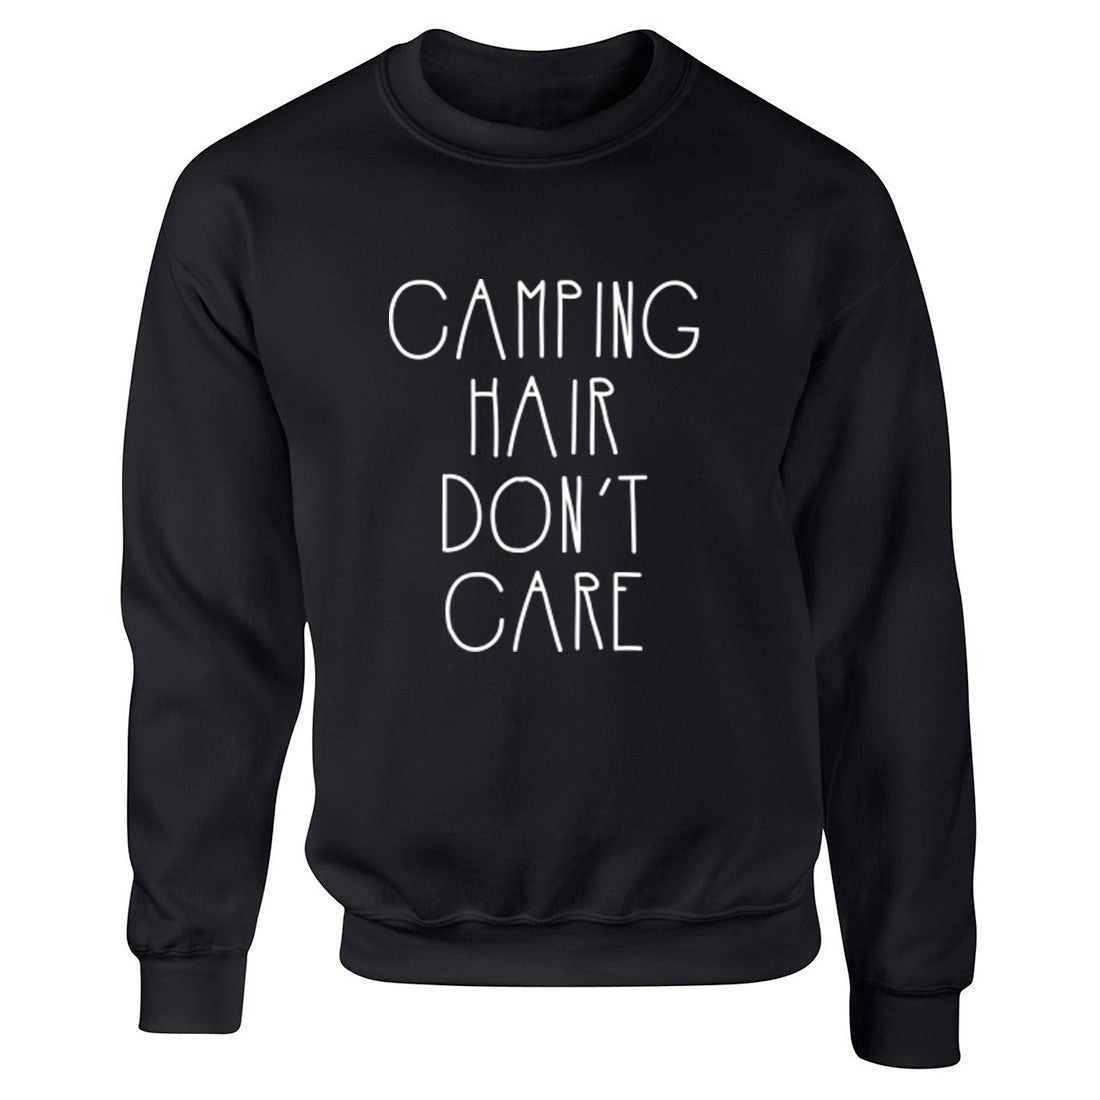 Camping Hair Don't Care Unisex Jumper K0462 - Illustrated Identity Ltd.